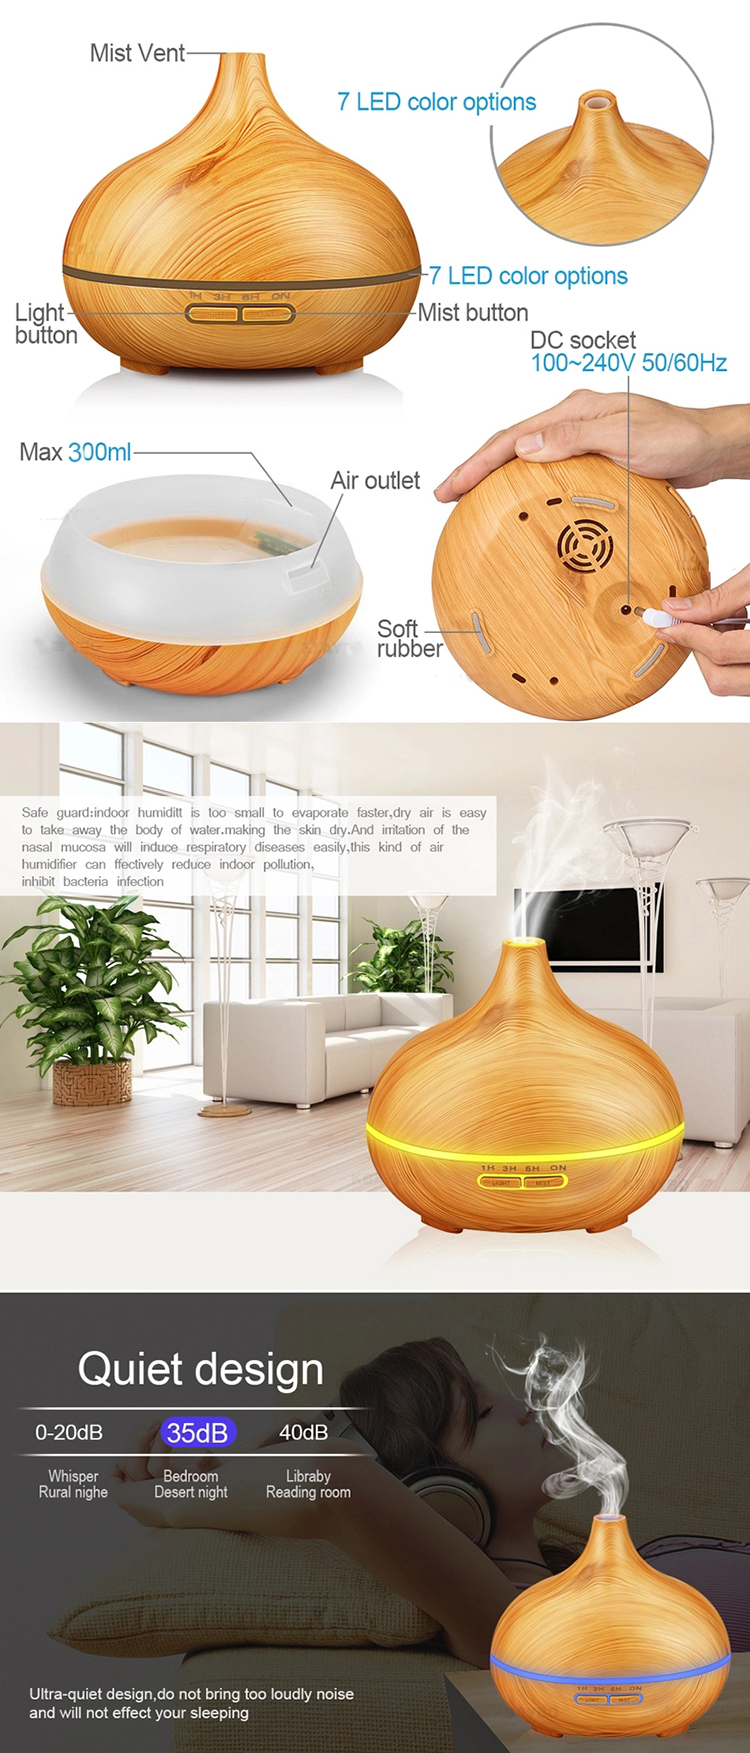 Wood air purifier aromatherapy spray humidifier anion freshener machine nebulizer aroma diffuser